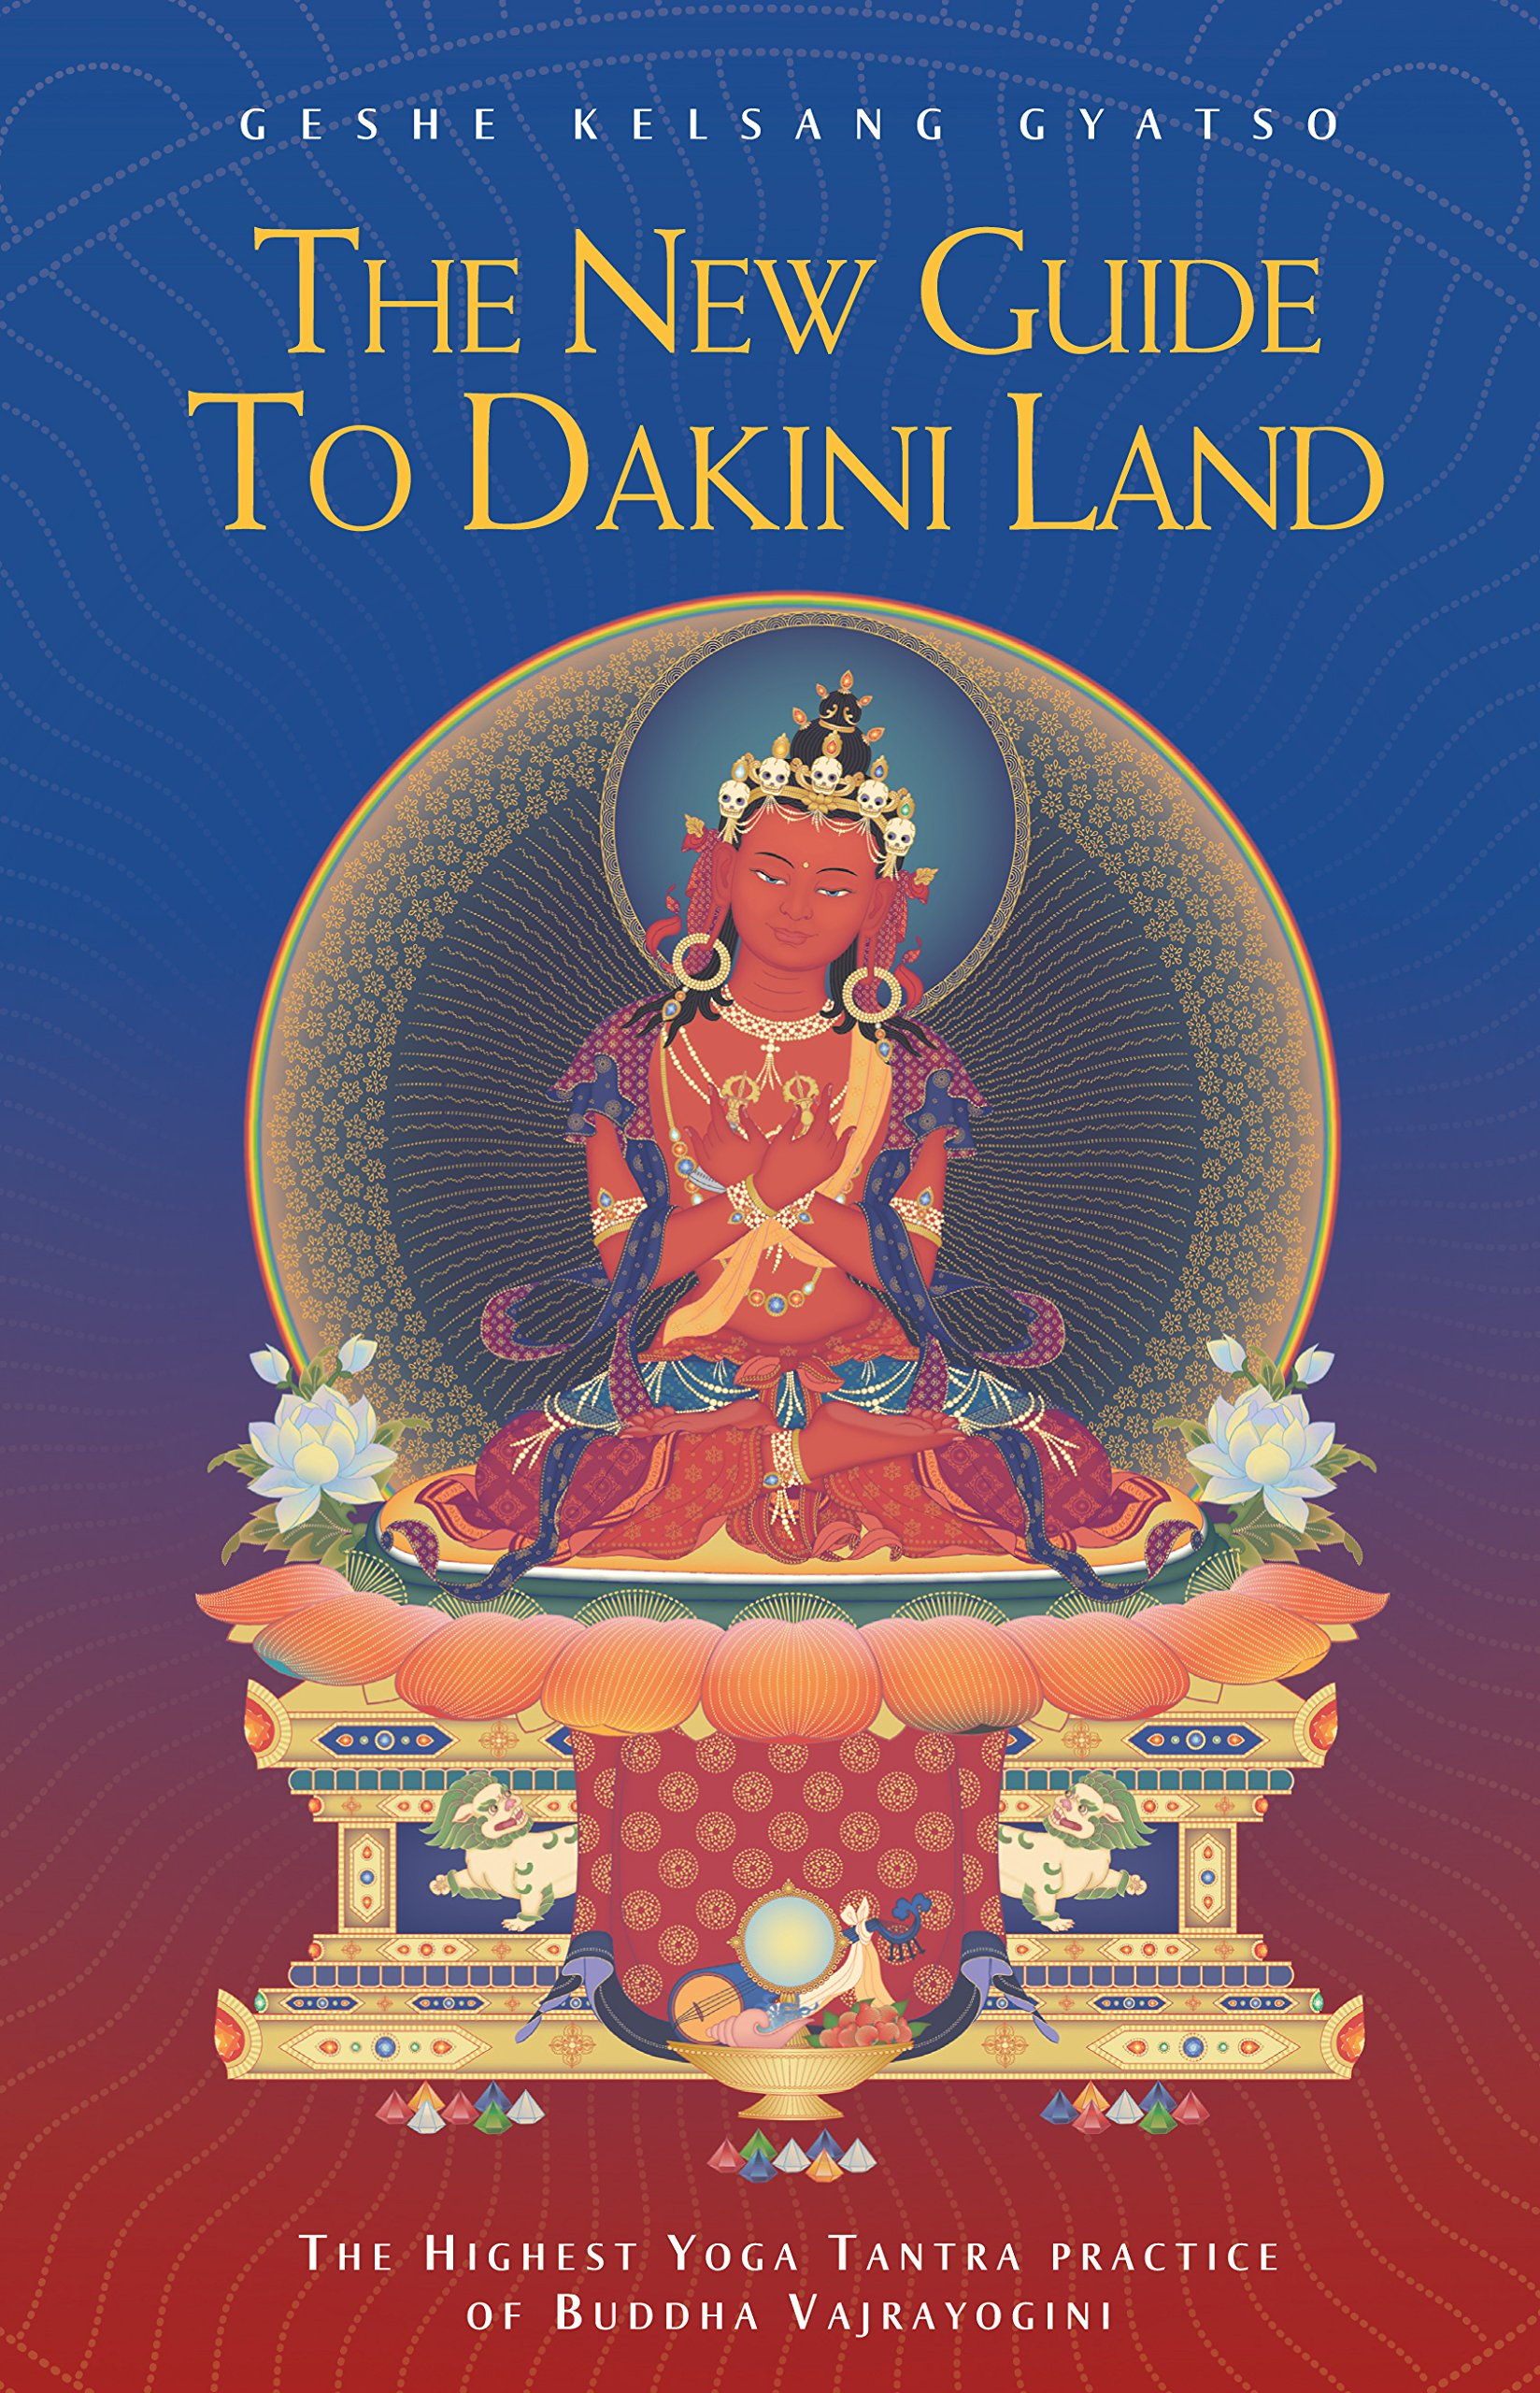 The New Guide to Dakini Land: The Highest Yoga Tantra practice of